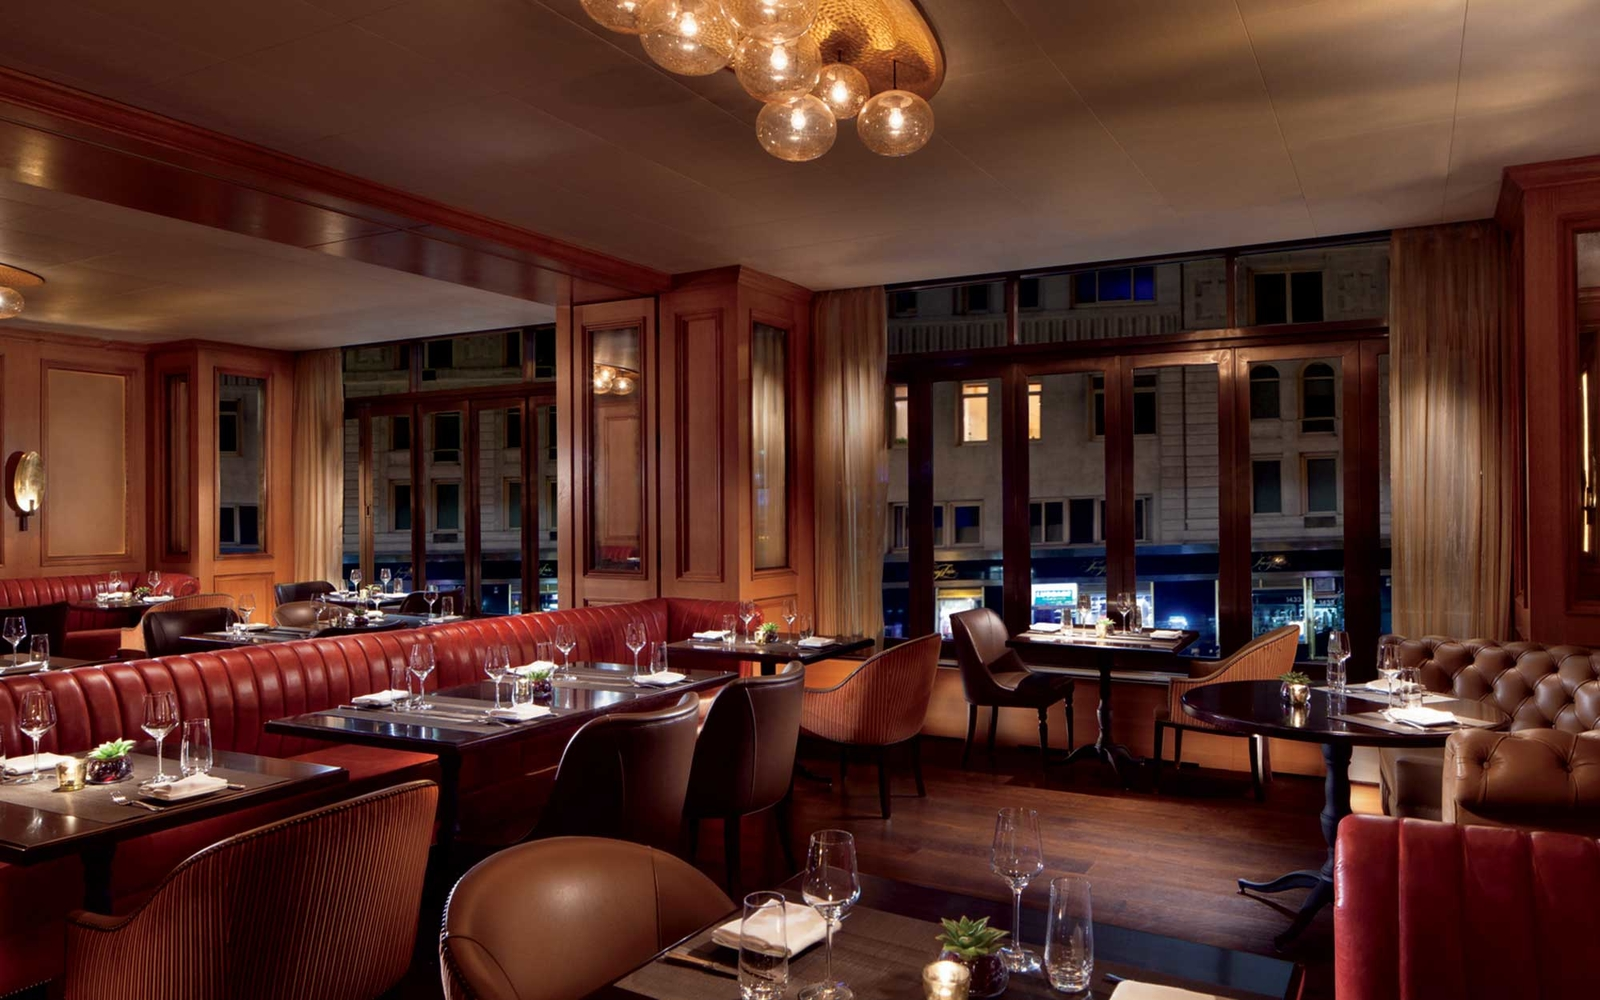 Luxury Hotels Taking Sustainable Dining to New Heights